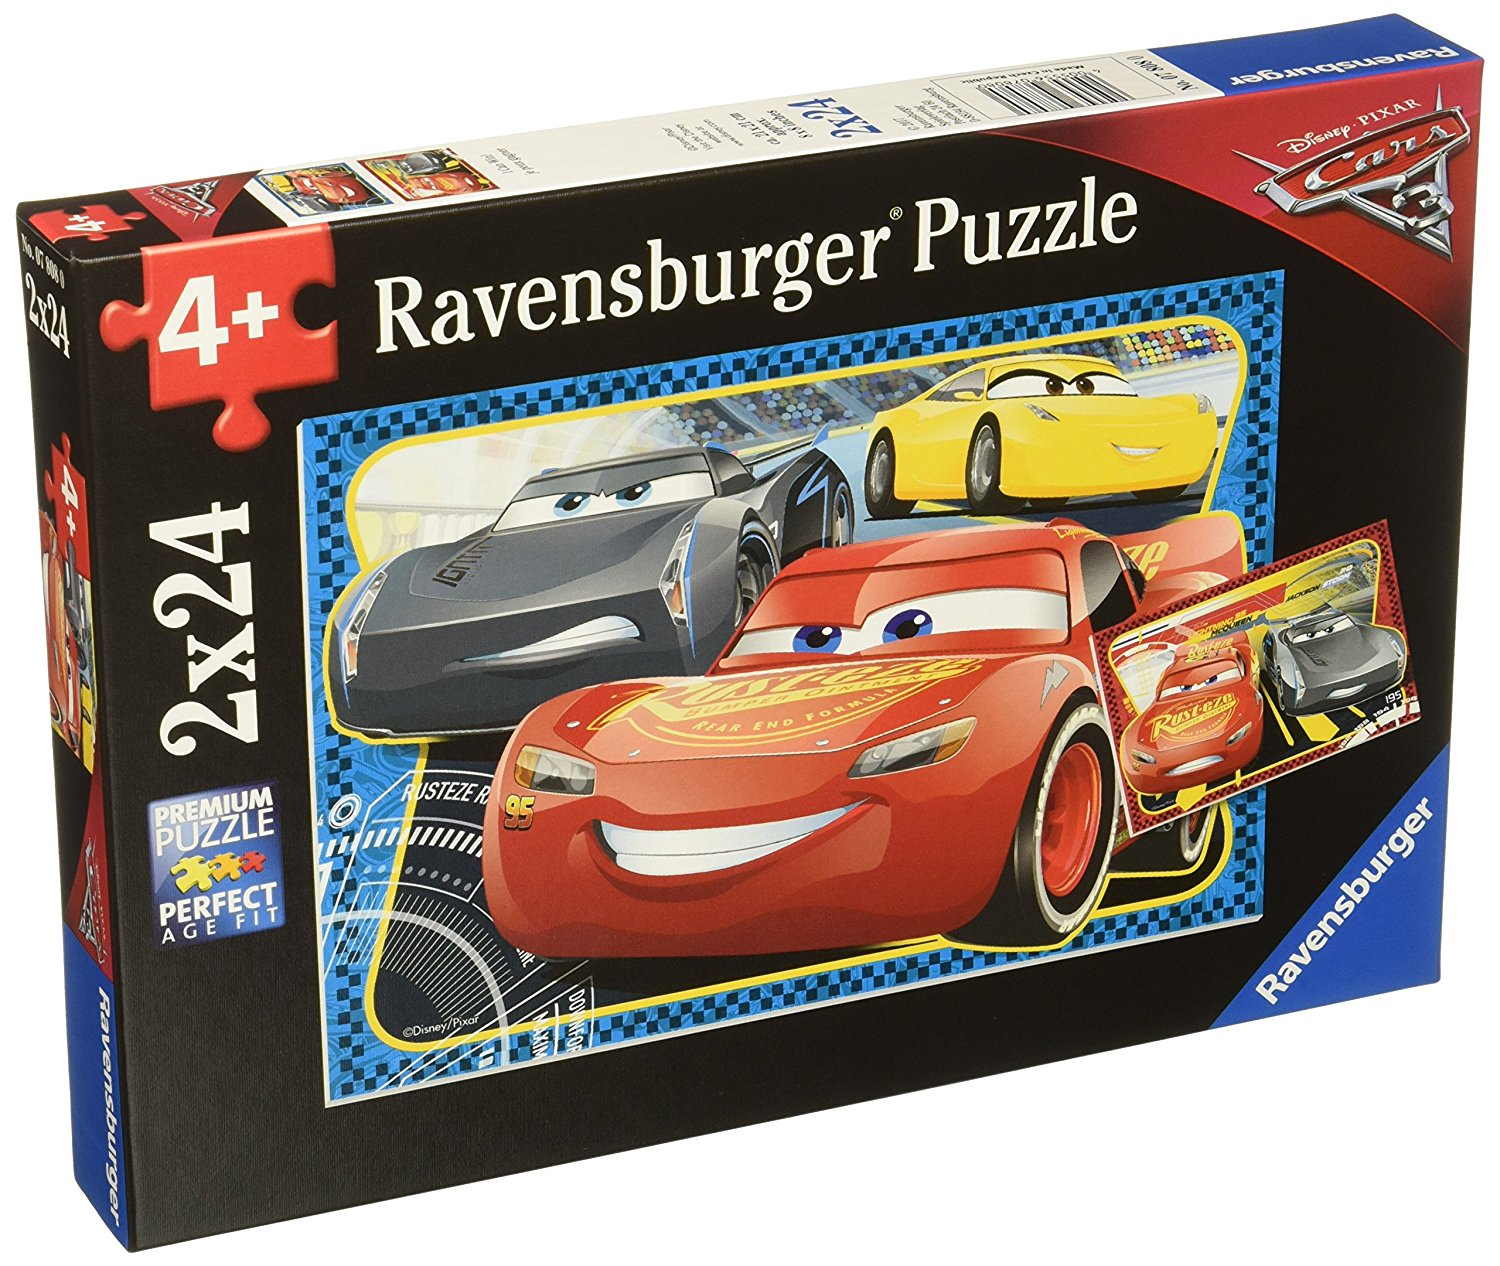 2 puzzles cars 3 ravensburger 07808 24 pieces jigsaw puzzles cars jigsaw puzzle. Black Bedroom Furniture Sets. Home Design Ideas